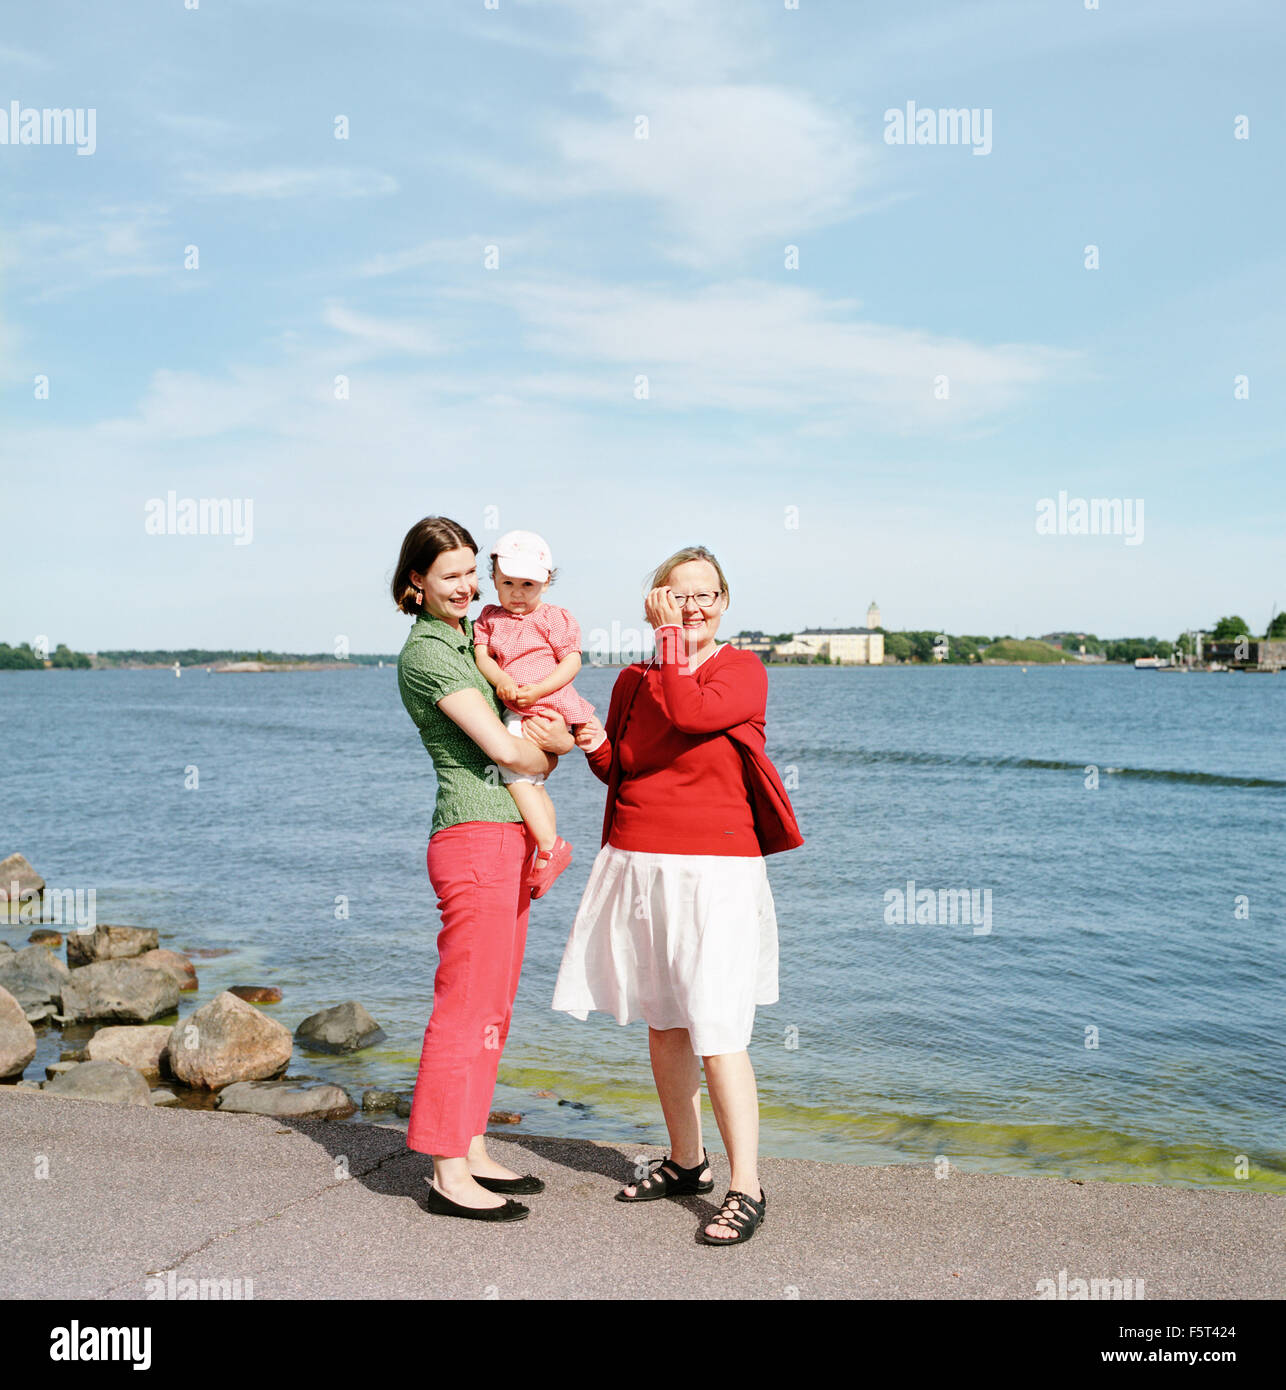 Finland, Helsinki, Uusimaa, Portrait of mother, daughter (2-3) and grandmother - Stock Image